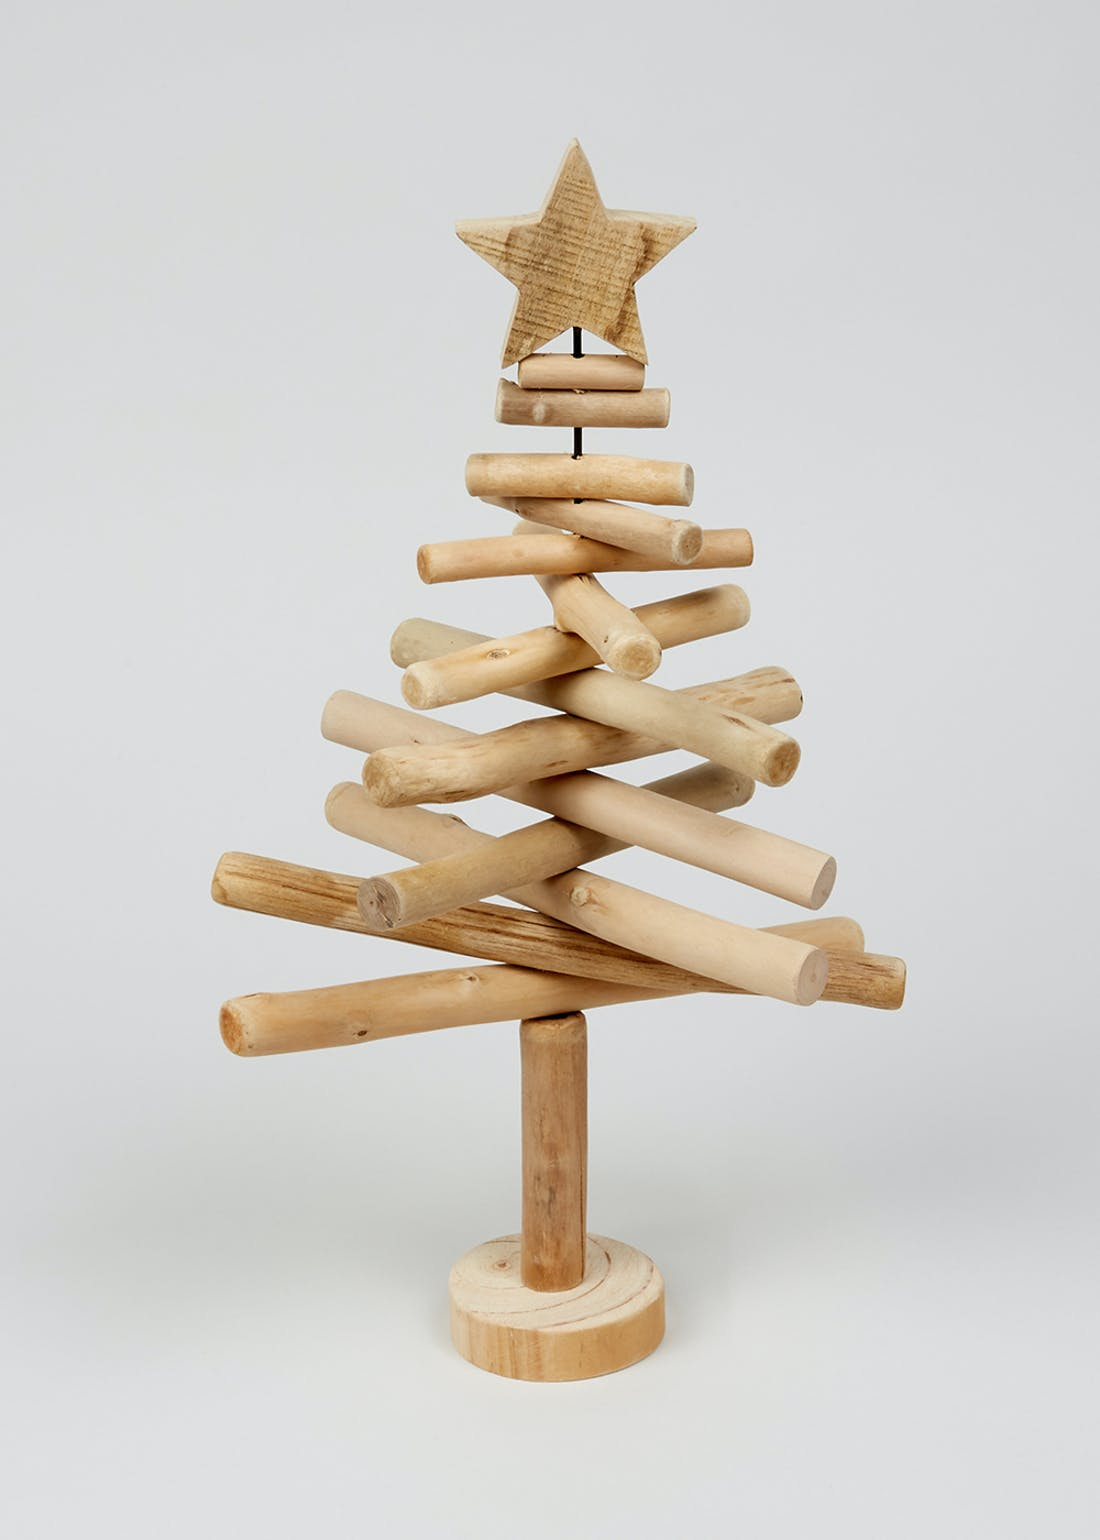 Wooden Stick Christmas Tree (44cm x 25cm x 8cm)